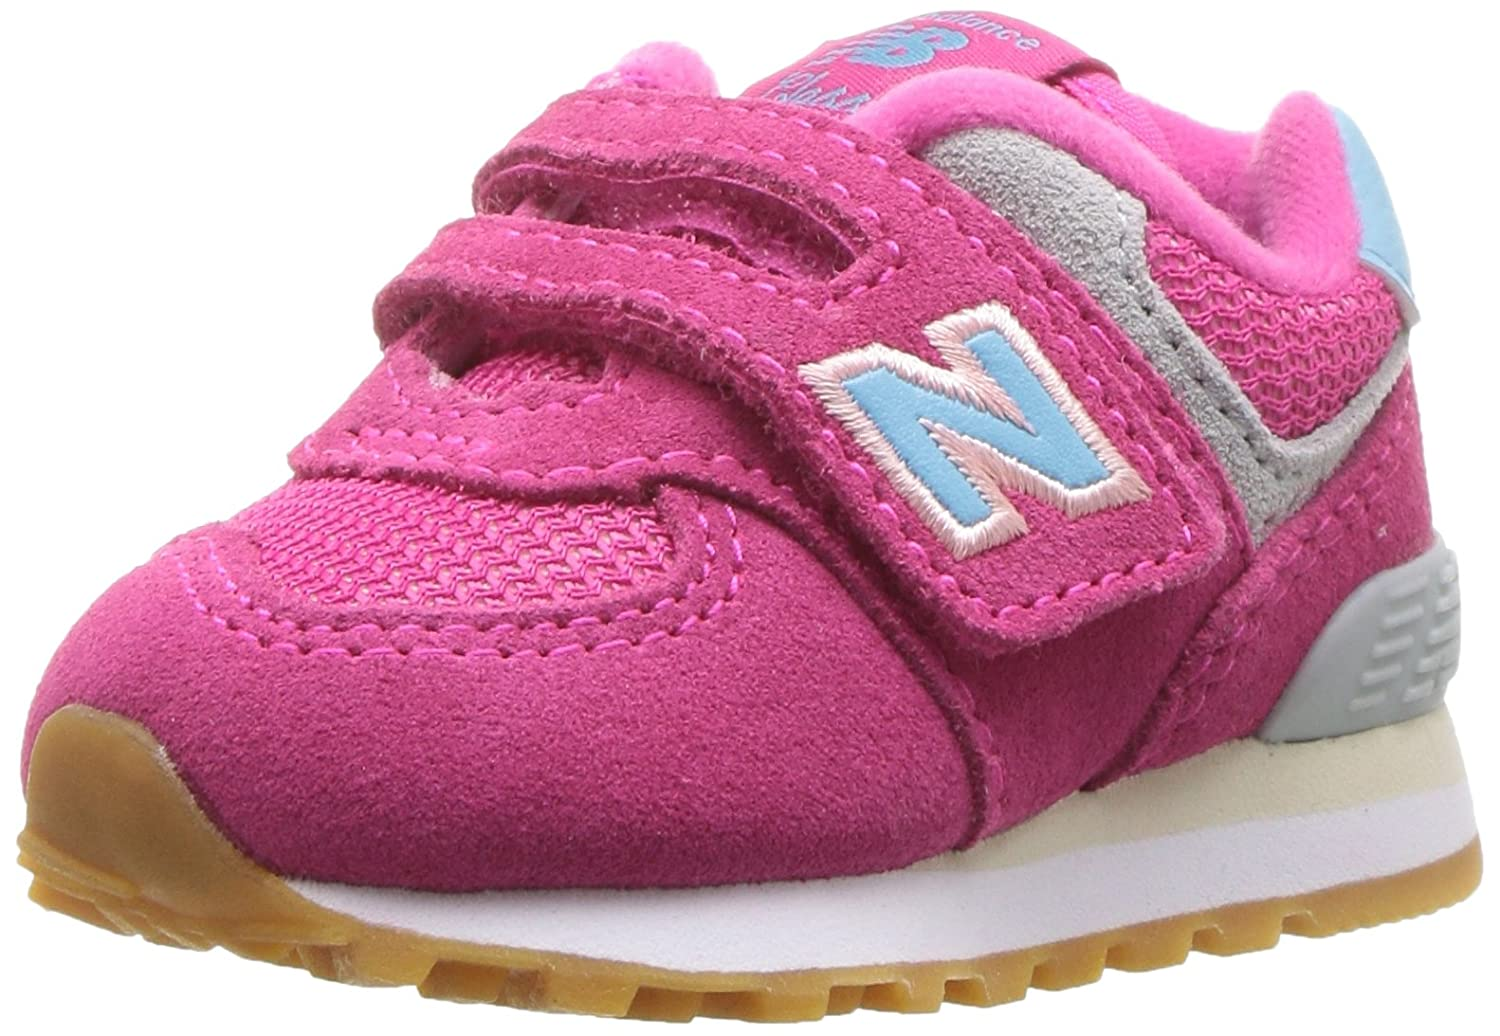 New Balance Kids Boys 574v1 Hook and Loop Sneaker